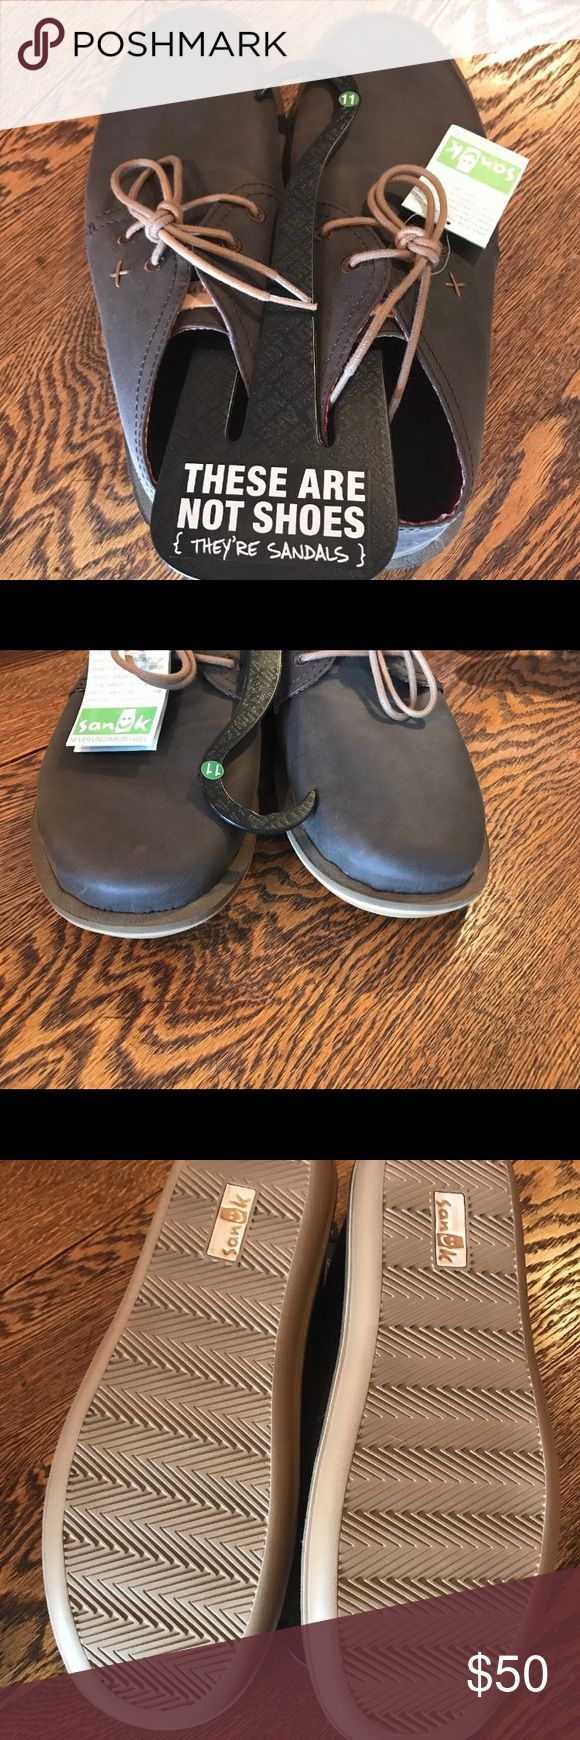 Sanuk Men's NWT Vegan Lace-up Shoes Size 11 Sanuk NWT Vegan Lace-up Shoes Size 11! BRAND NEW! Purchased for my husband and were too small these tend to run a half size too small. Perfect for 10.5 or 10. No trades. Sanuk Shoes Loafers & Slip-Ons